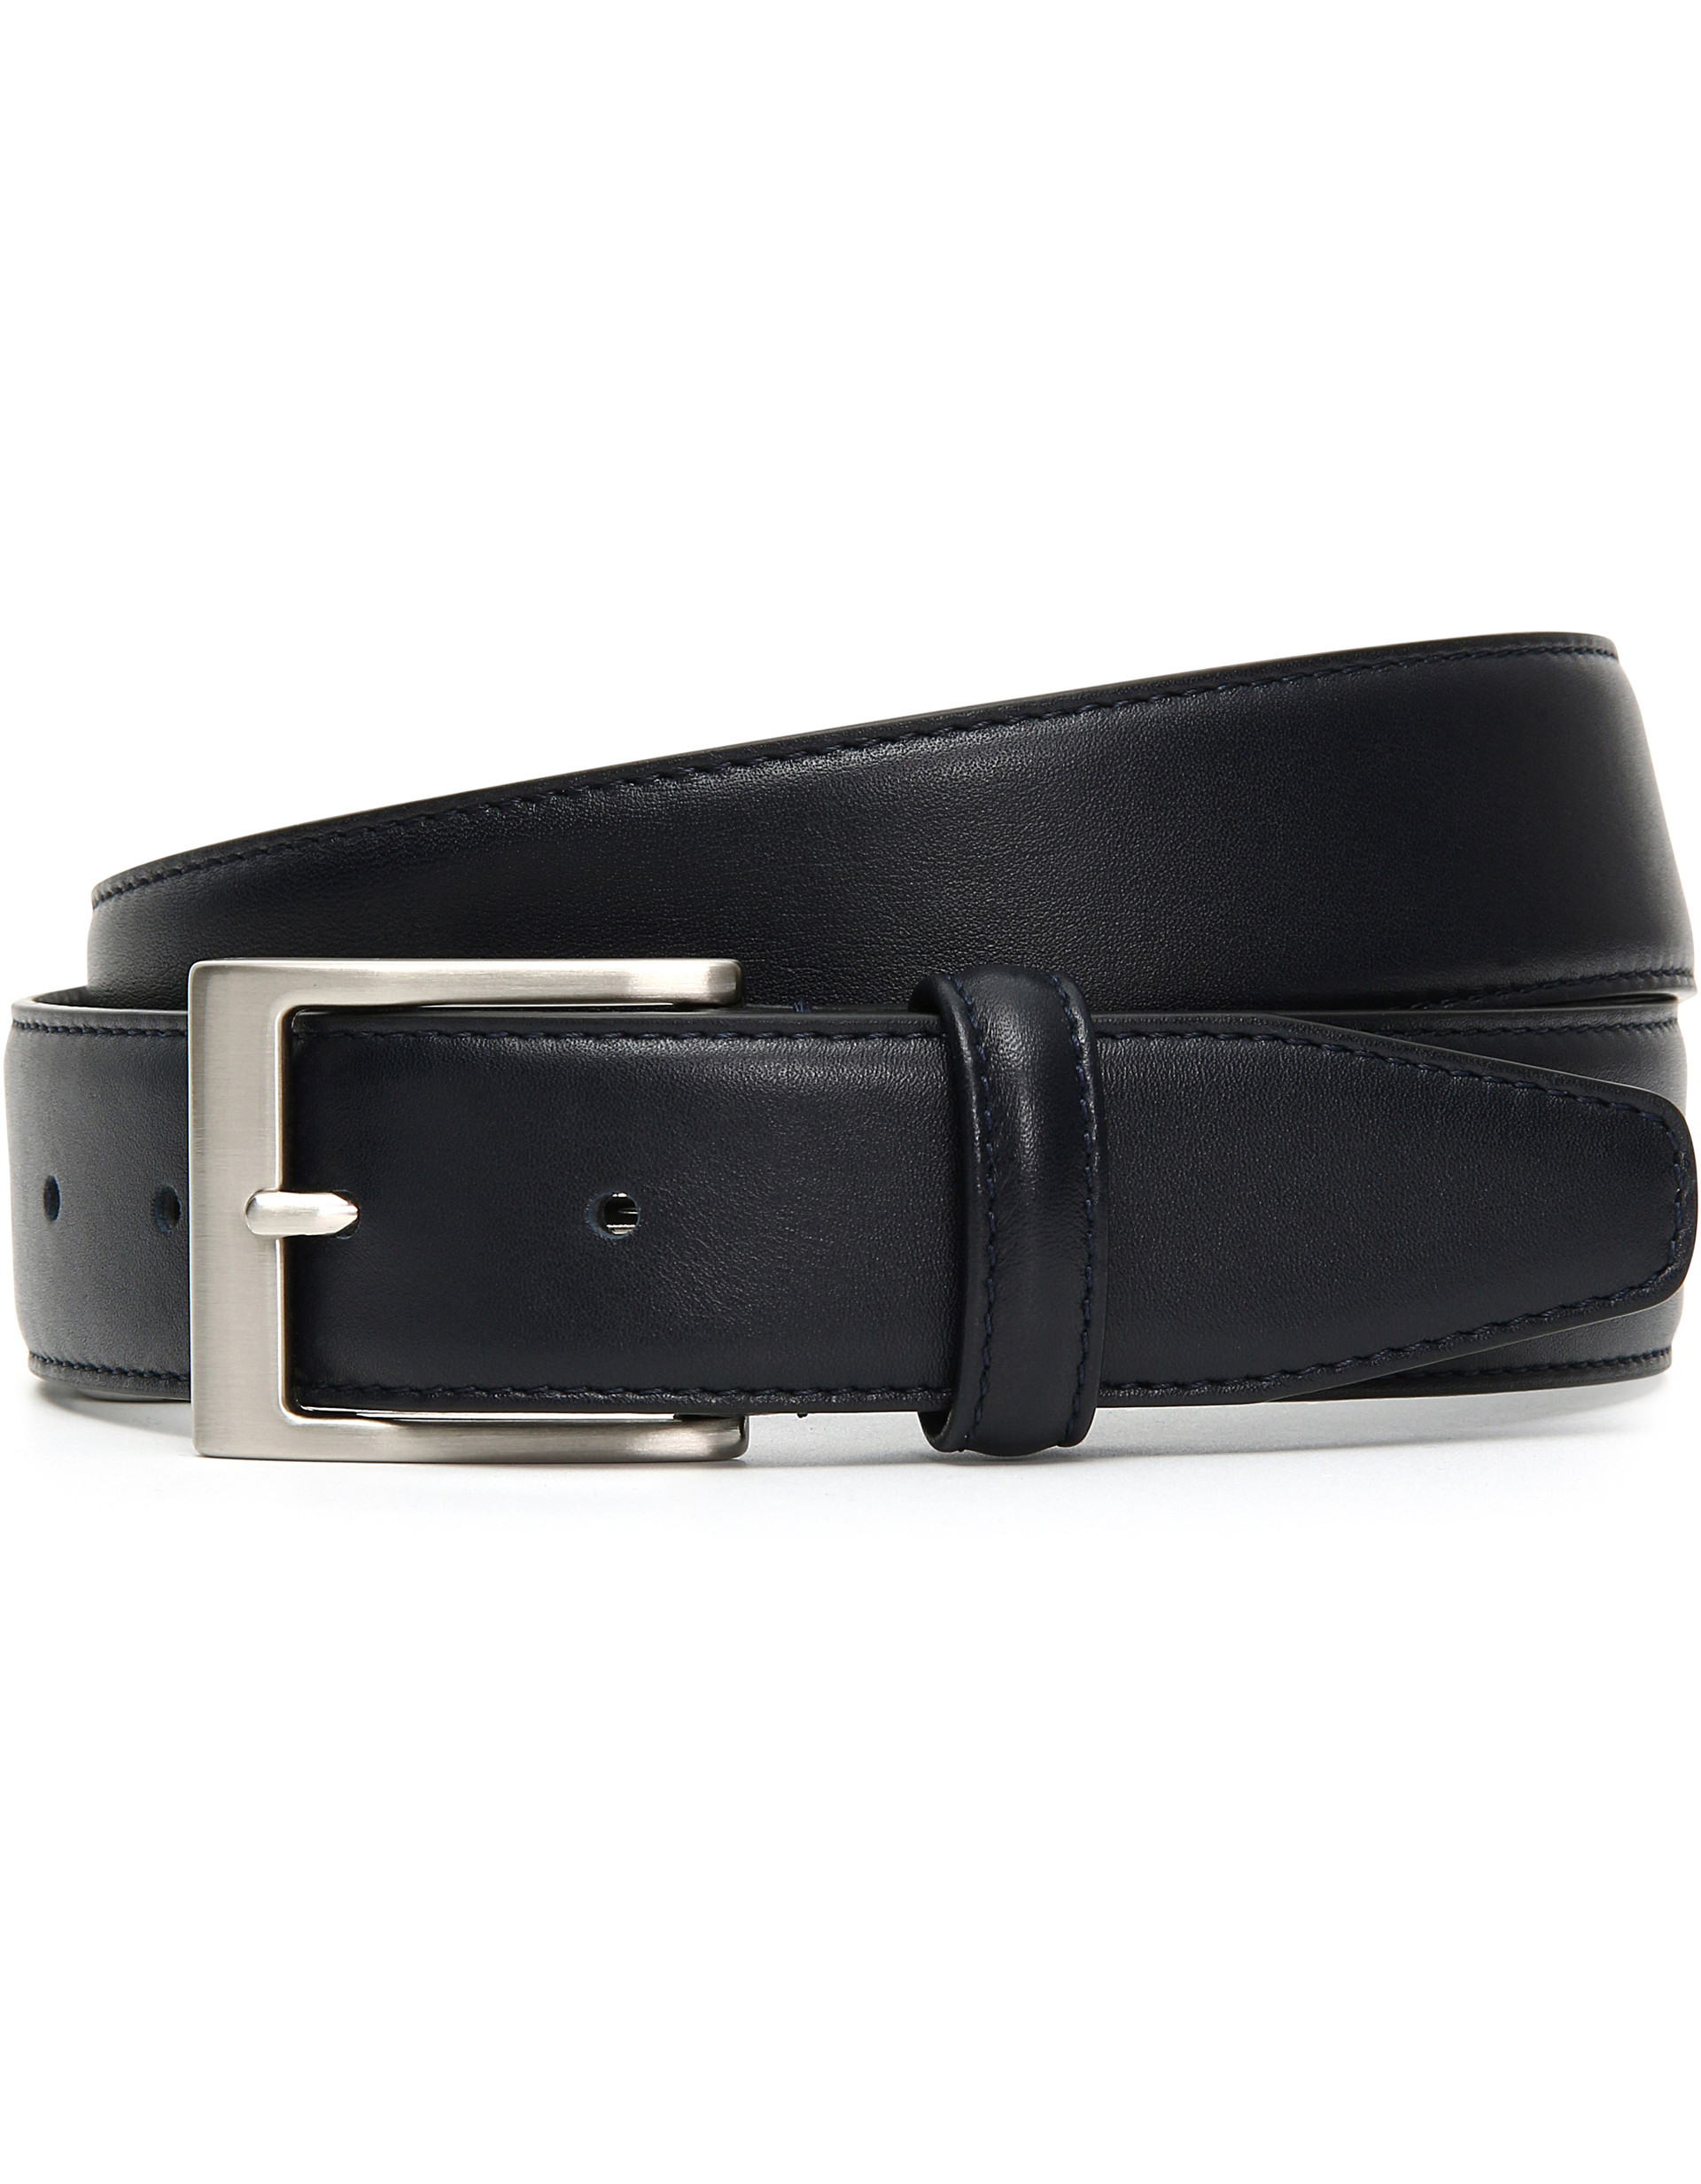 Blue Calfskin leather belt